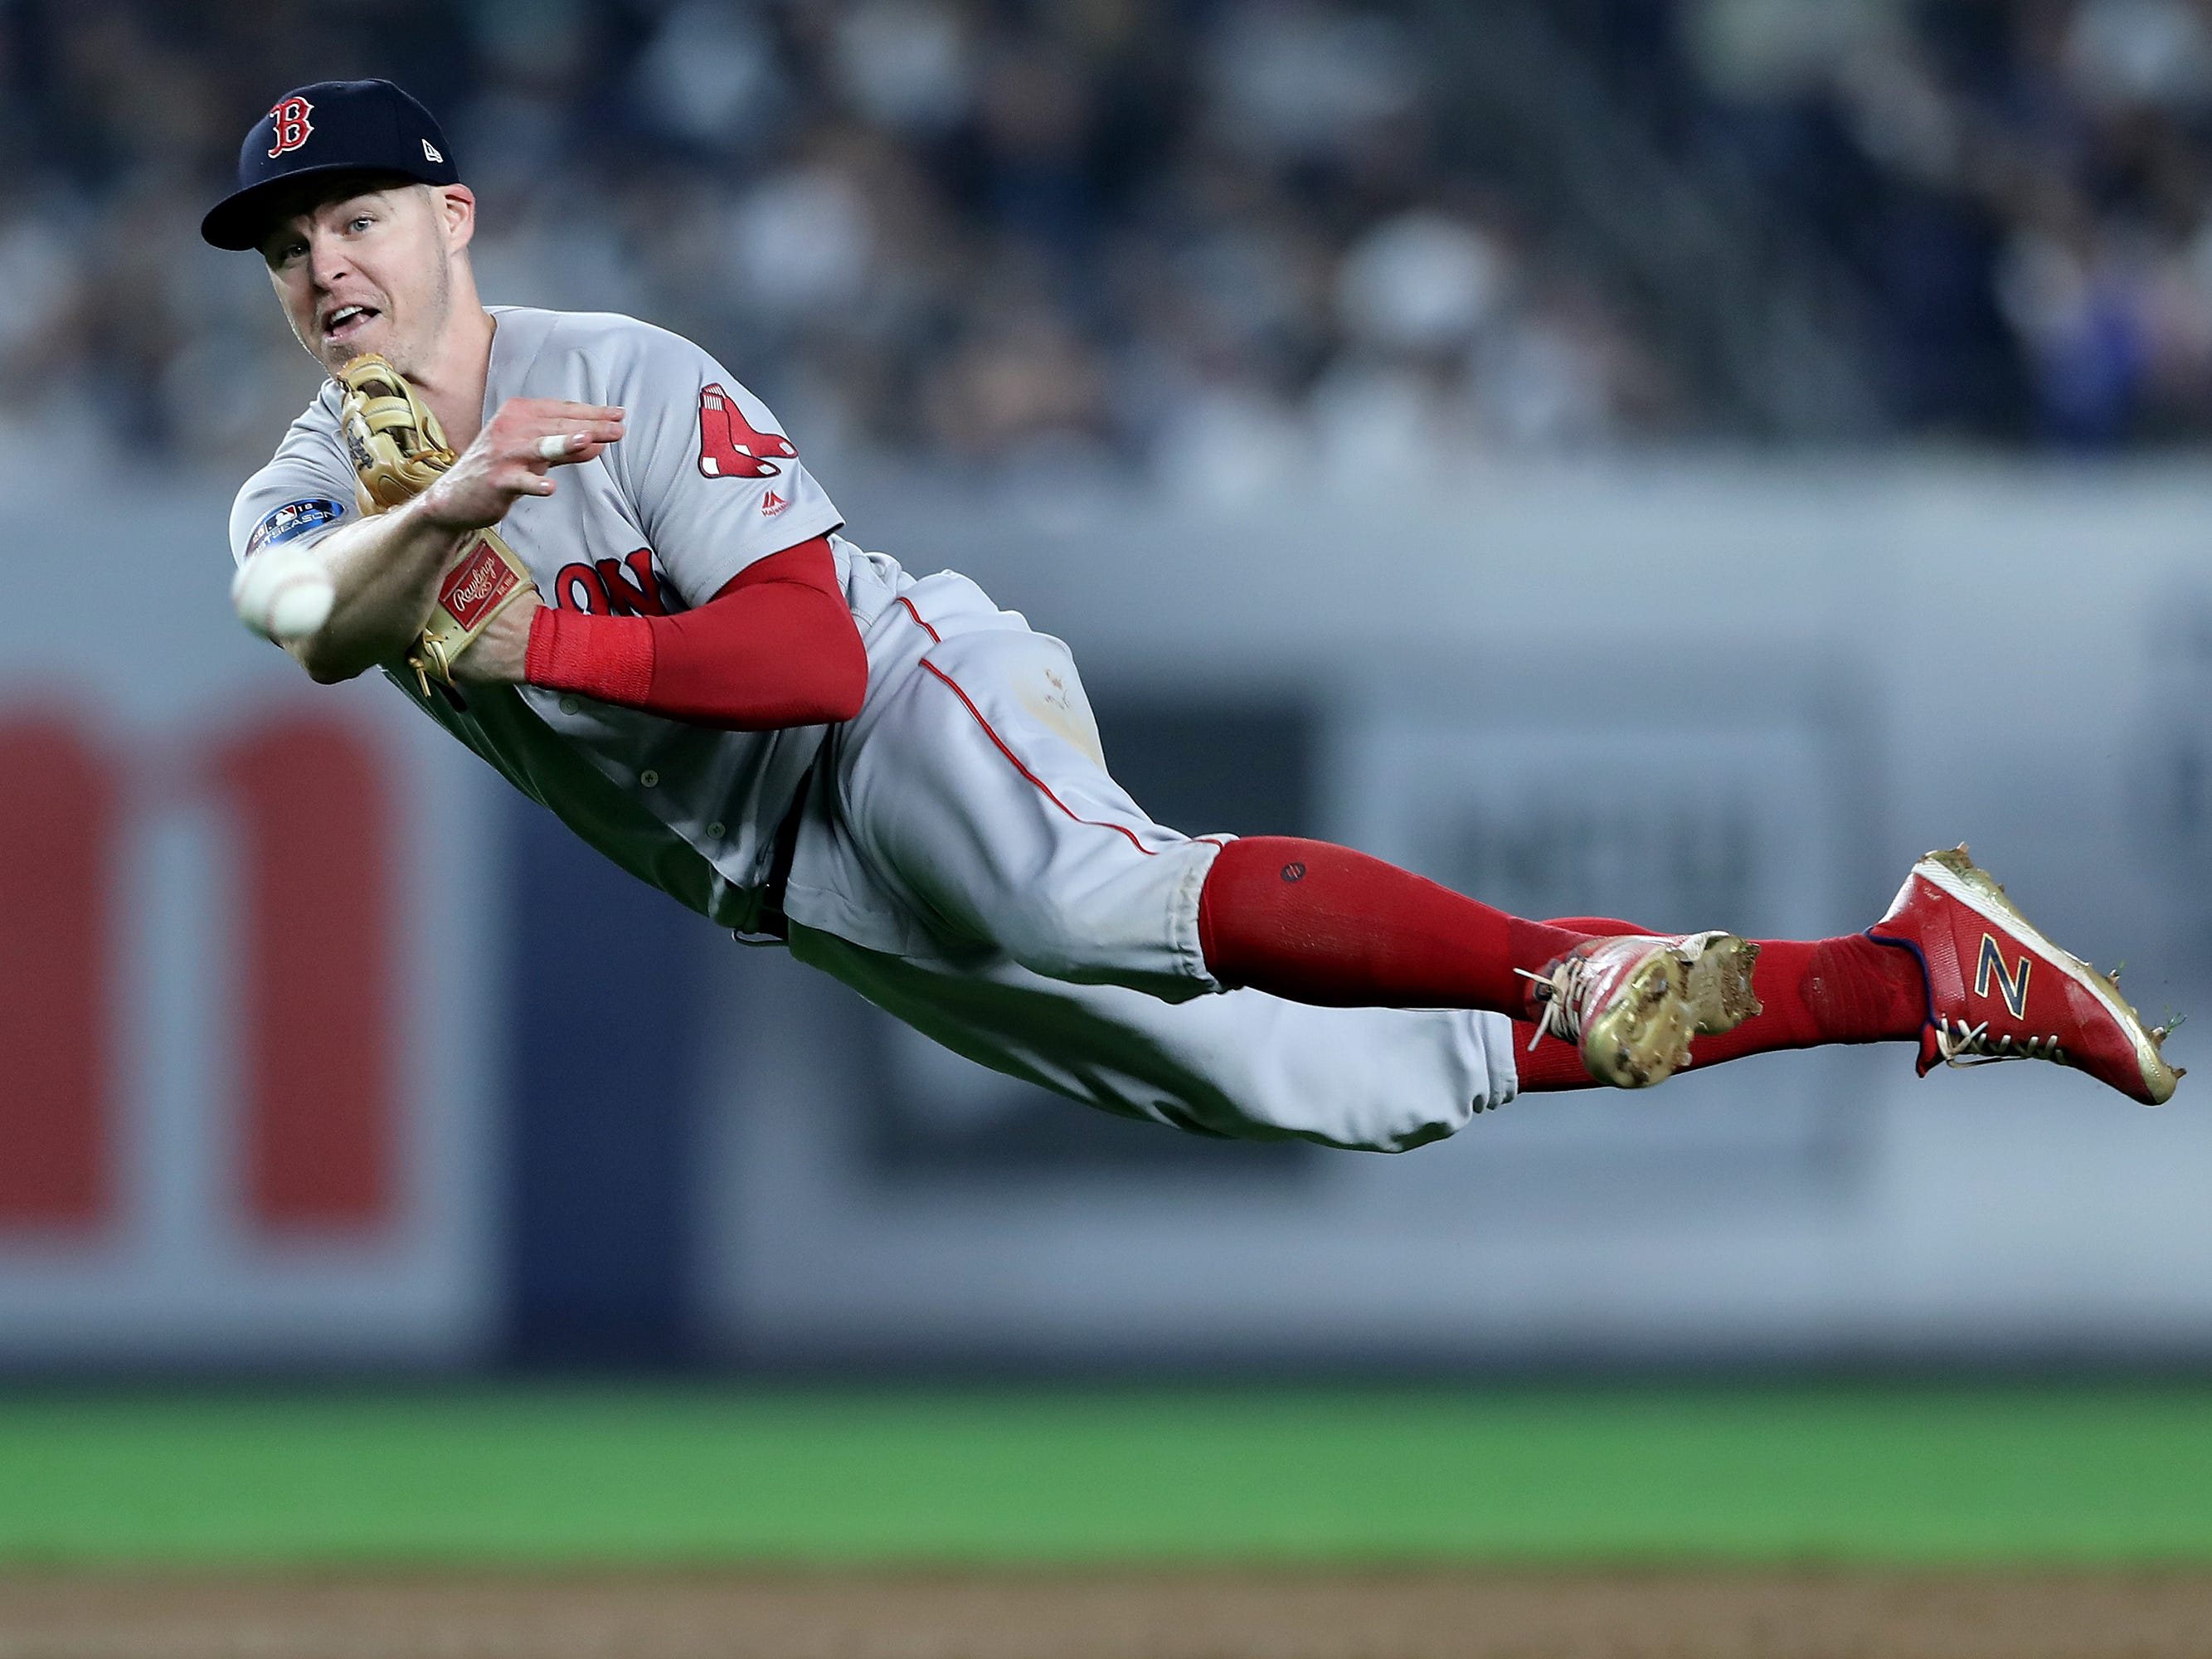 ALDS Game 3: Red Sox second baseman Brock Holt fields a hit by Luke Voit.